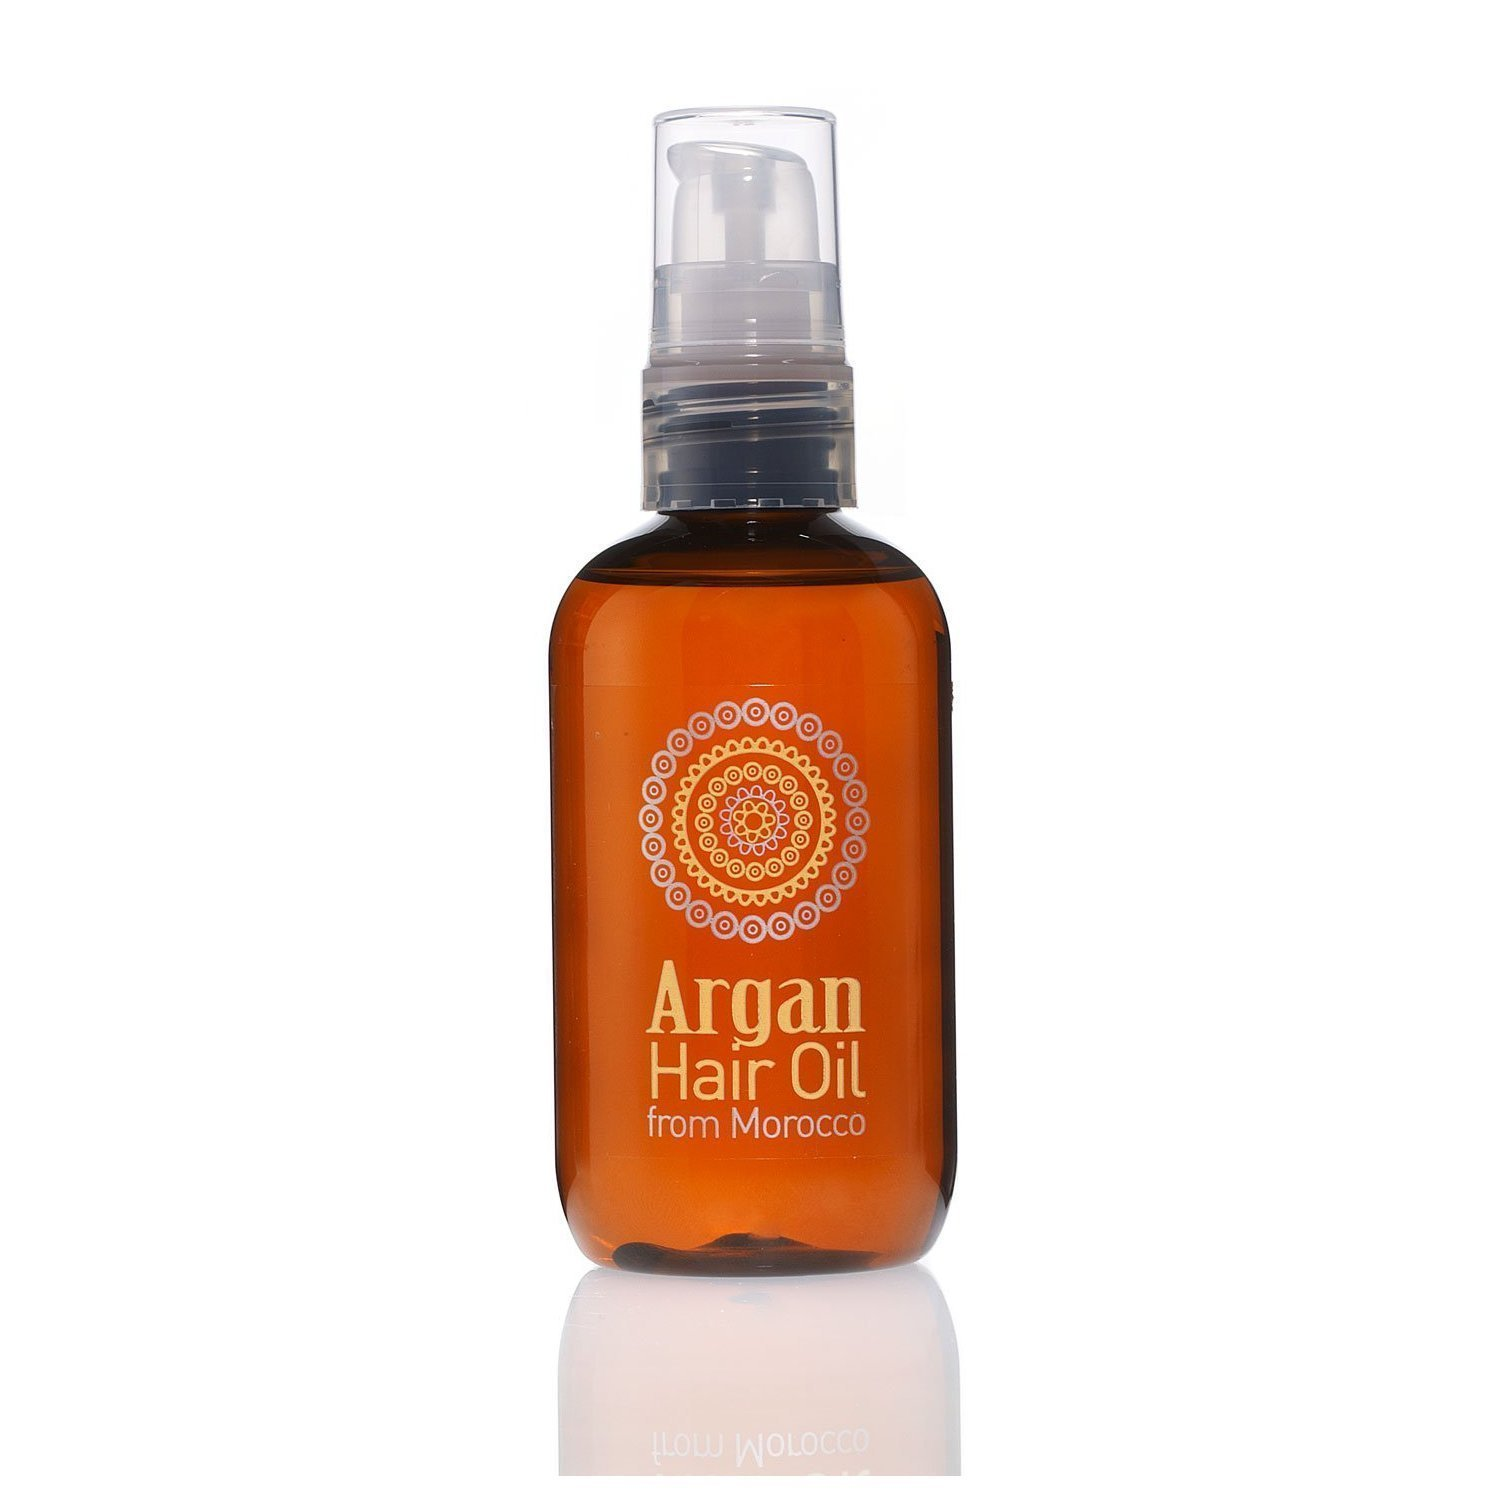 Moroccan Argan Hair Treatment Oil, Argan or Moroccan Oil for Body & Hair, Argan- eller Moroccanolje,  (1 av 1)